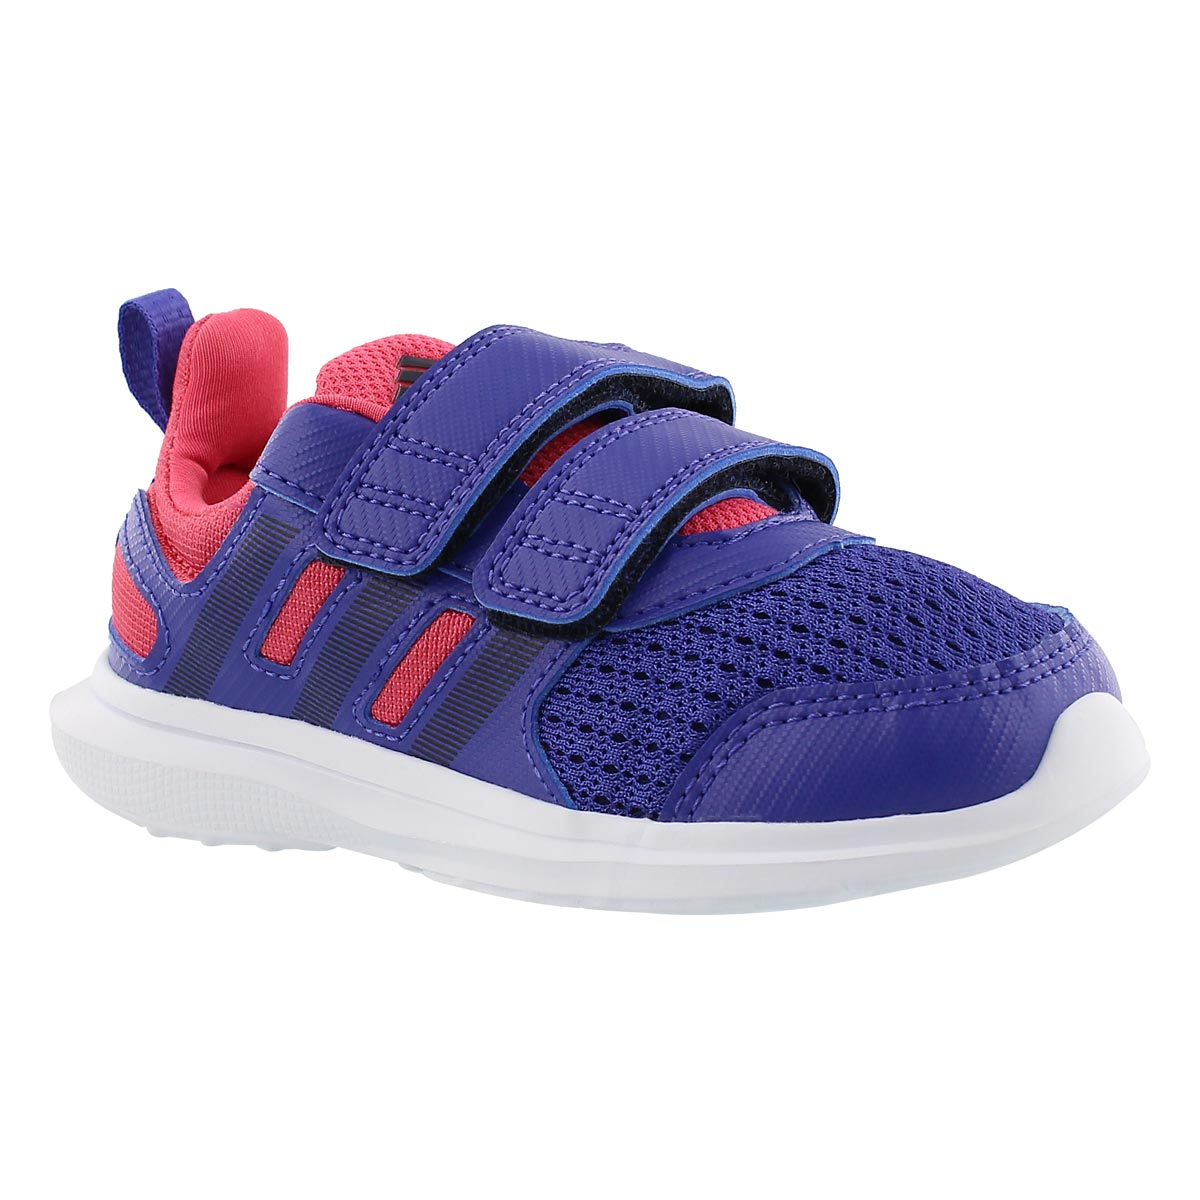 Infants' HYPERFAST 2.0 blue/pink running shoes